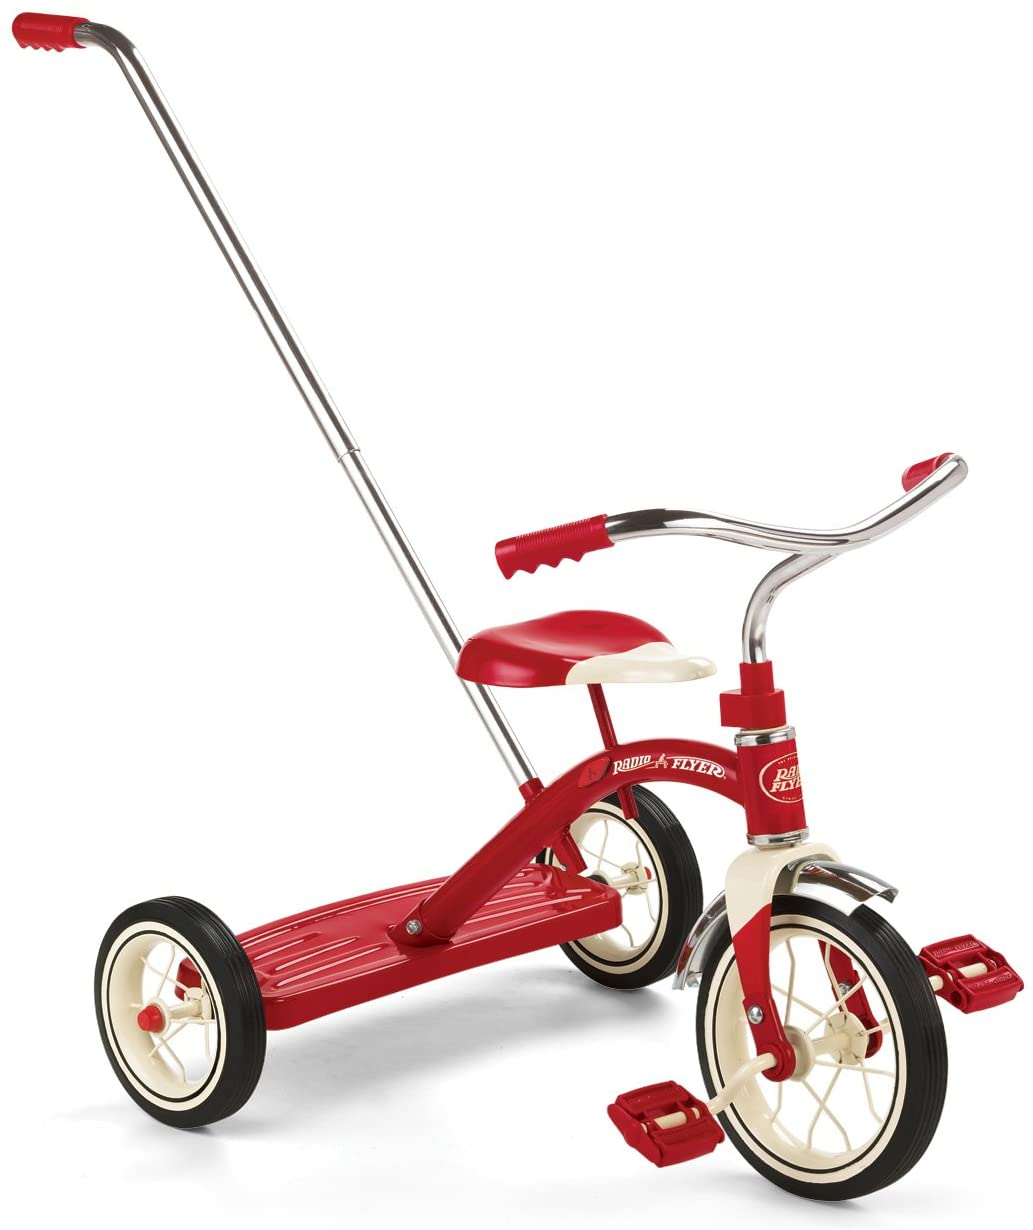 Radio Flyer Classic Tricycle with Push Handle Review.